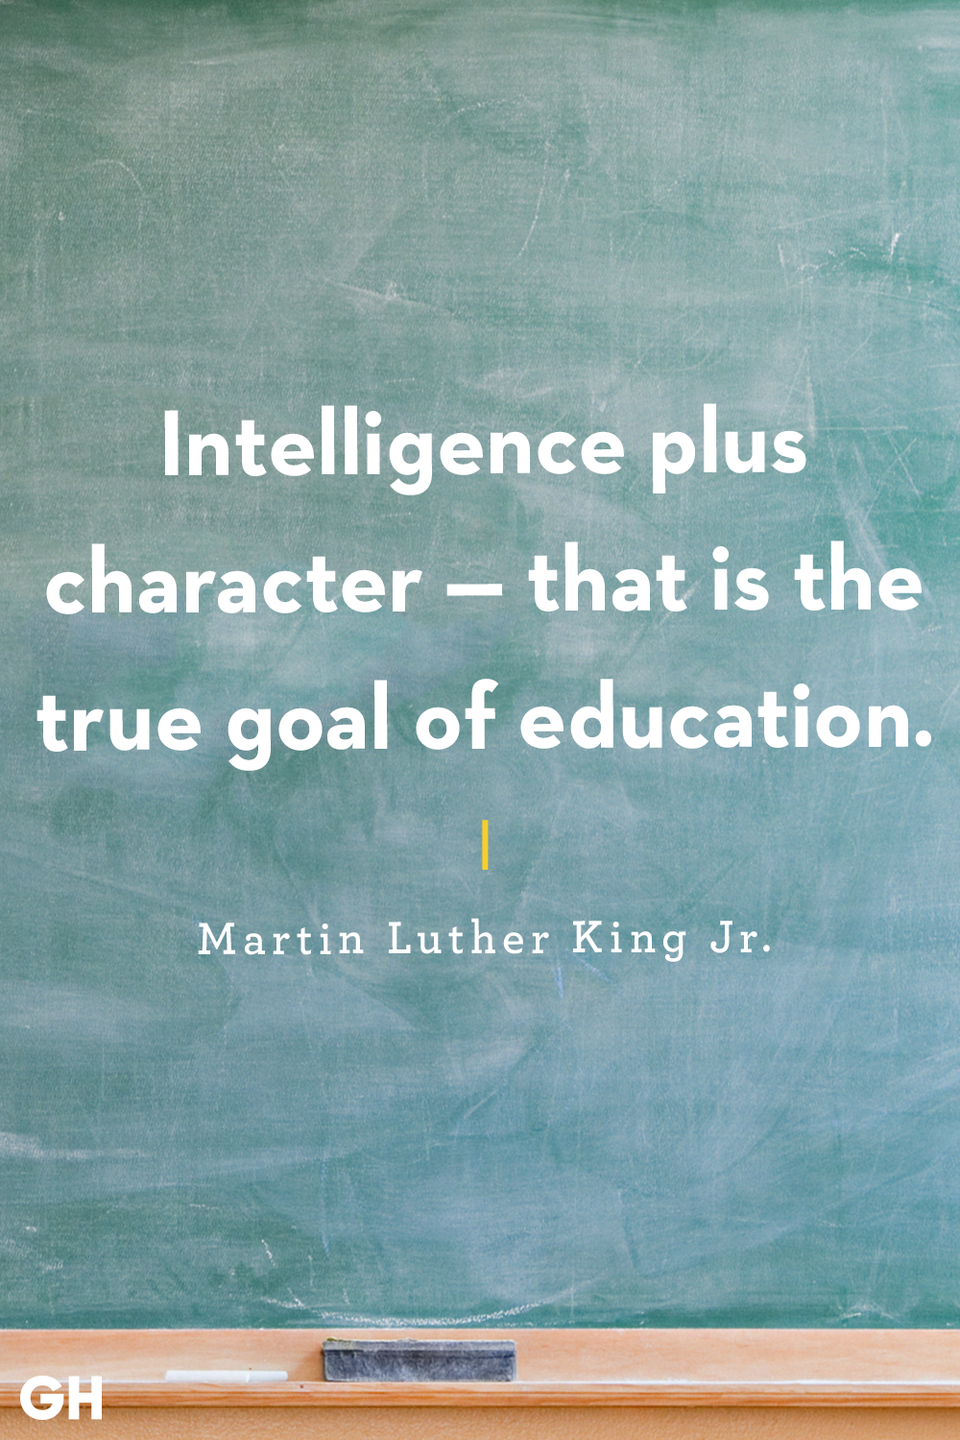 <p>Intelligence plus character — that is the true goal of education.</p>